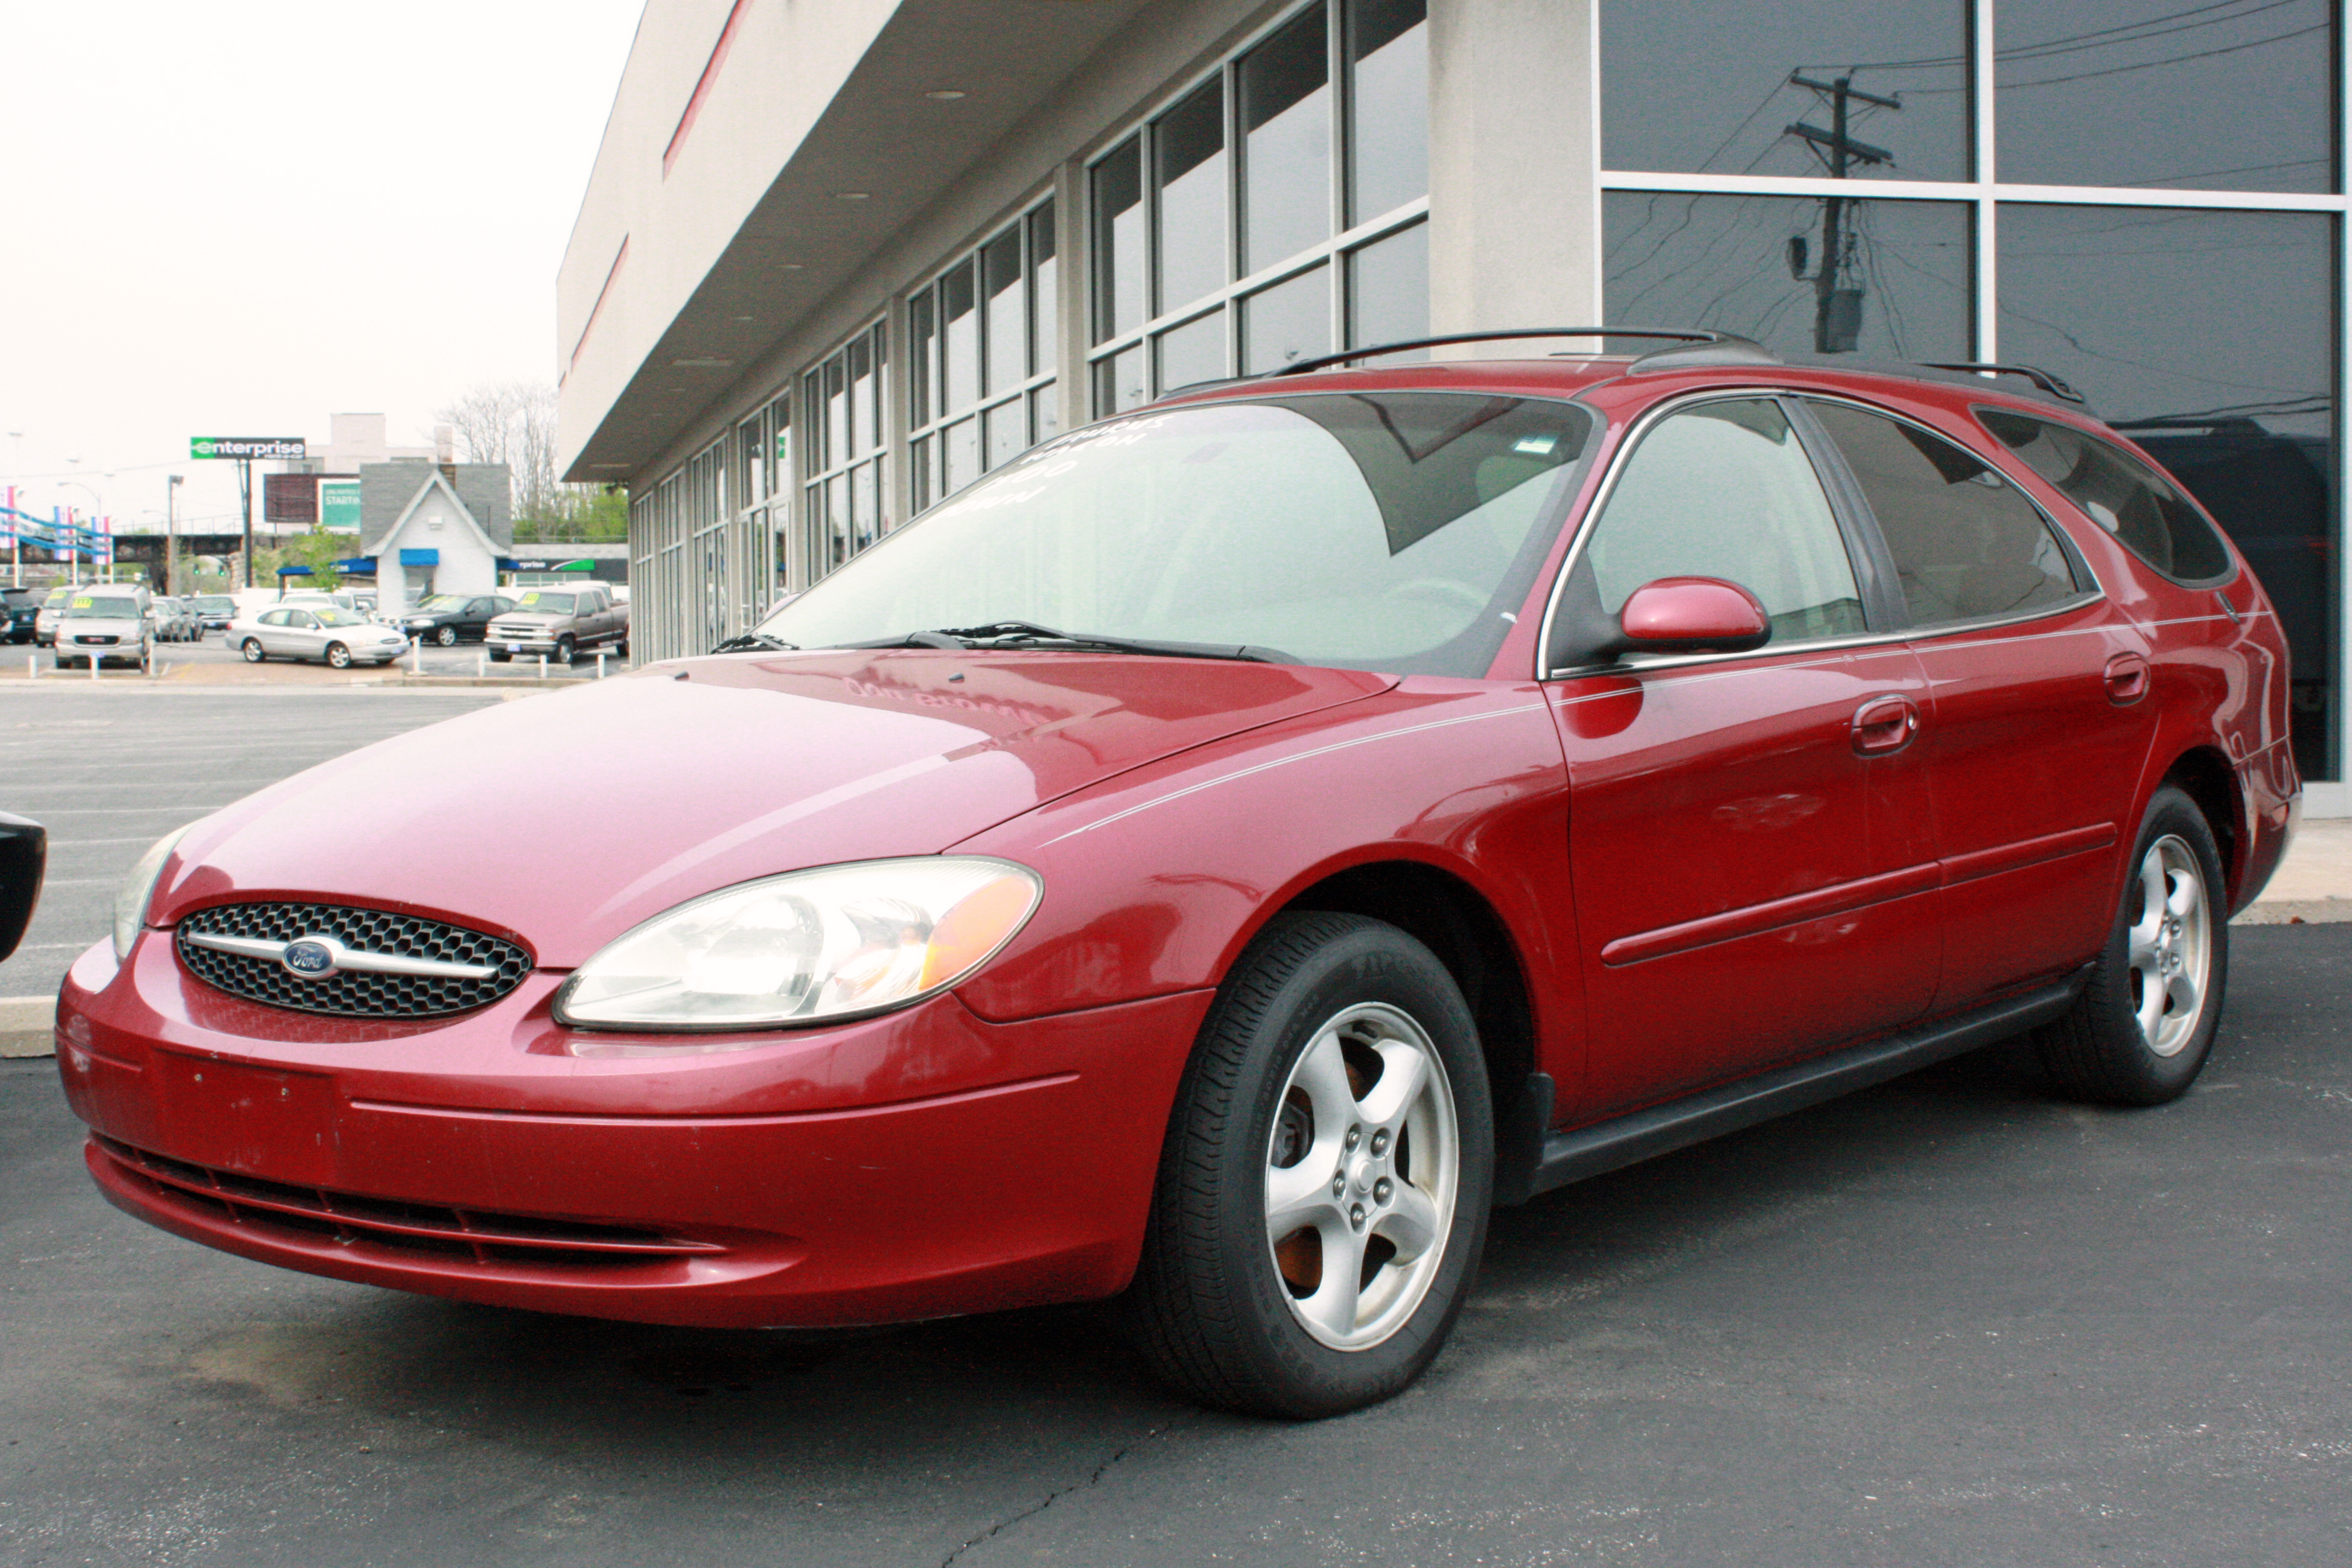 2000 Ford Taurus Station Wagon Owners Manual